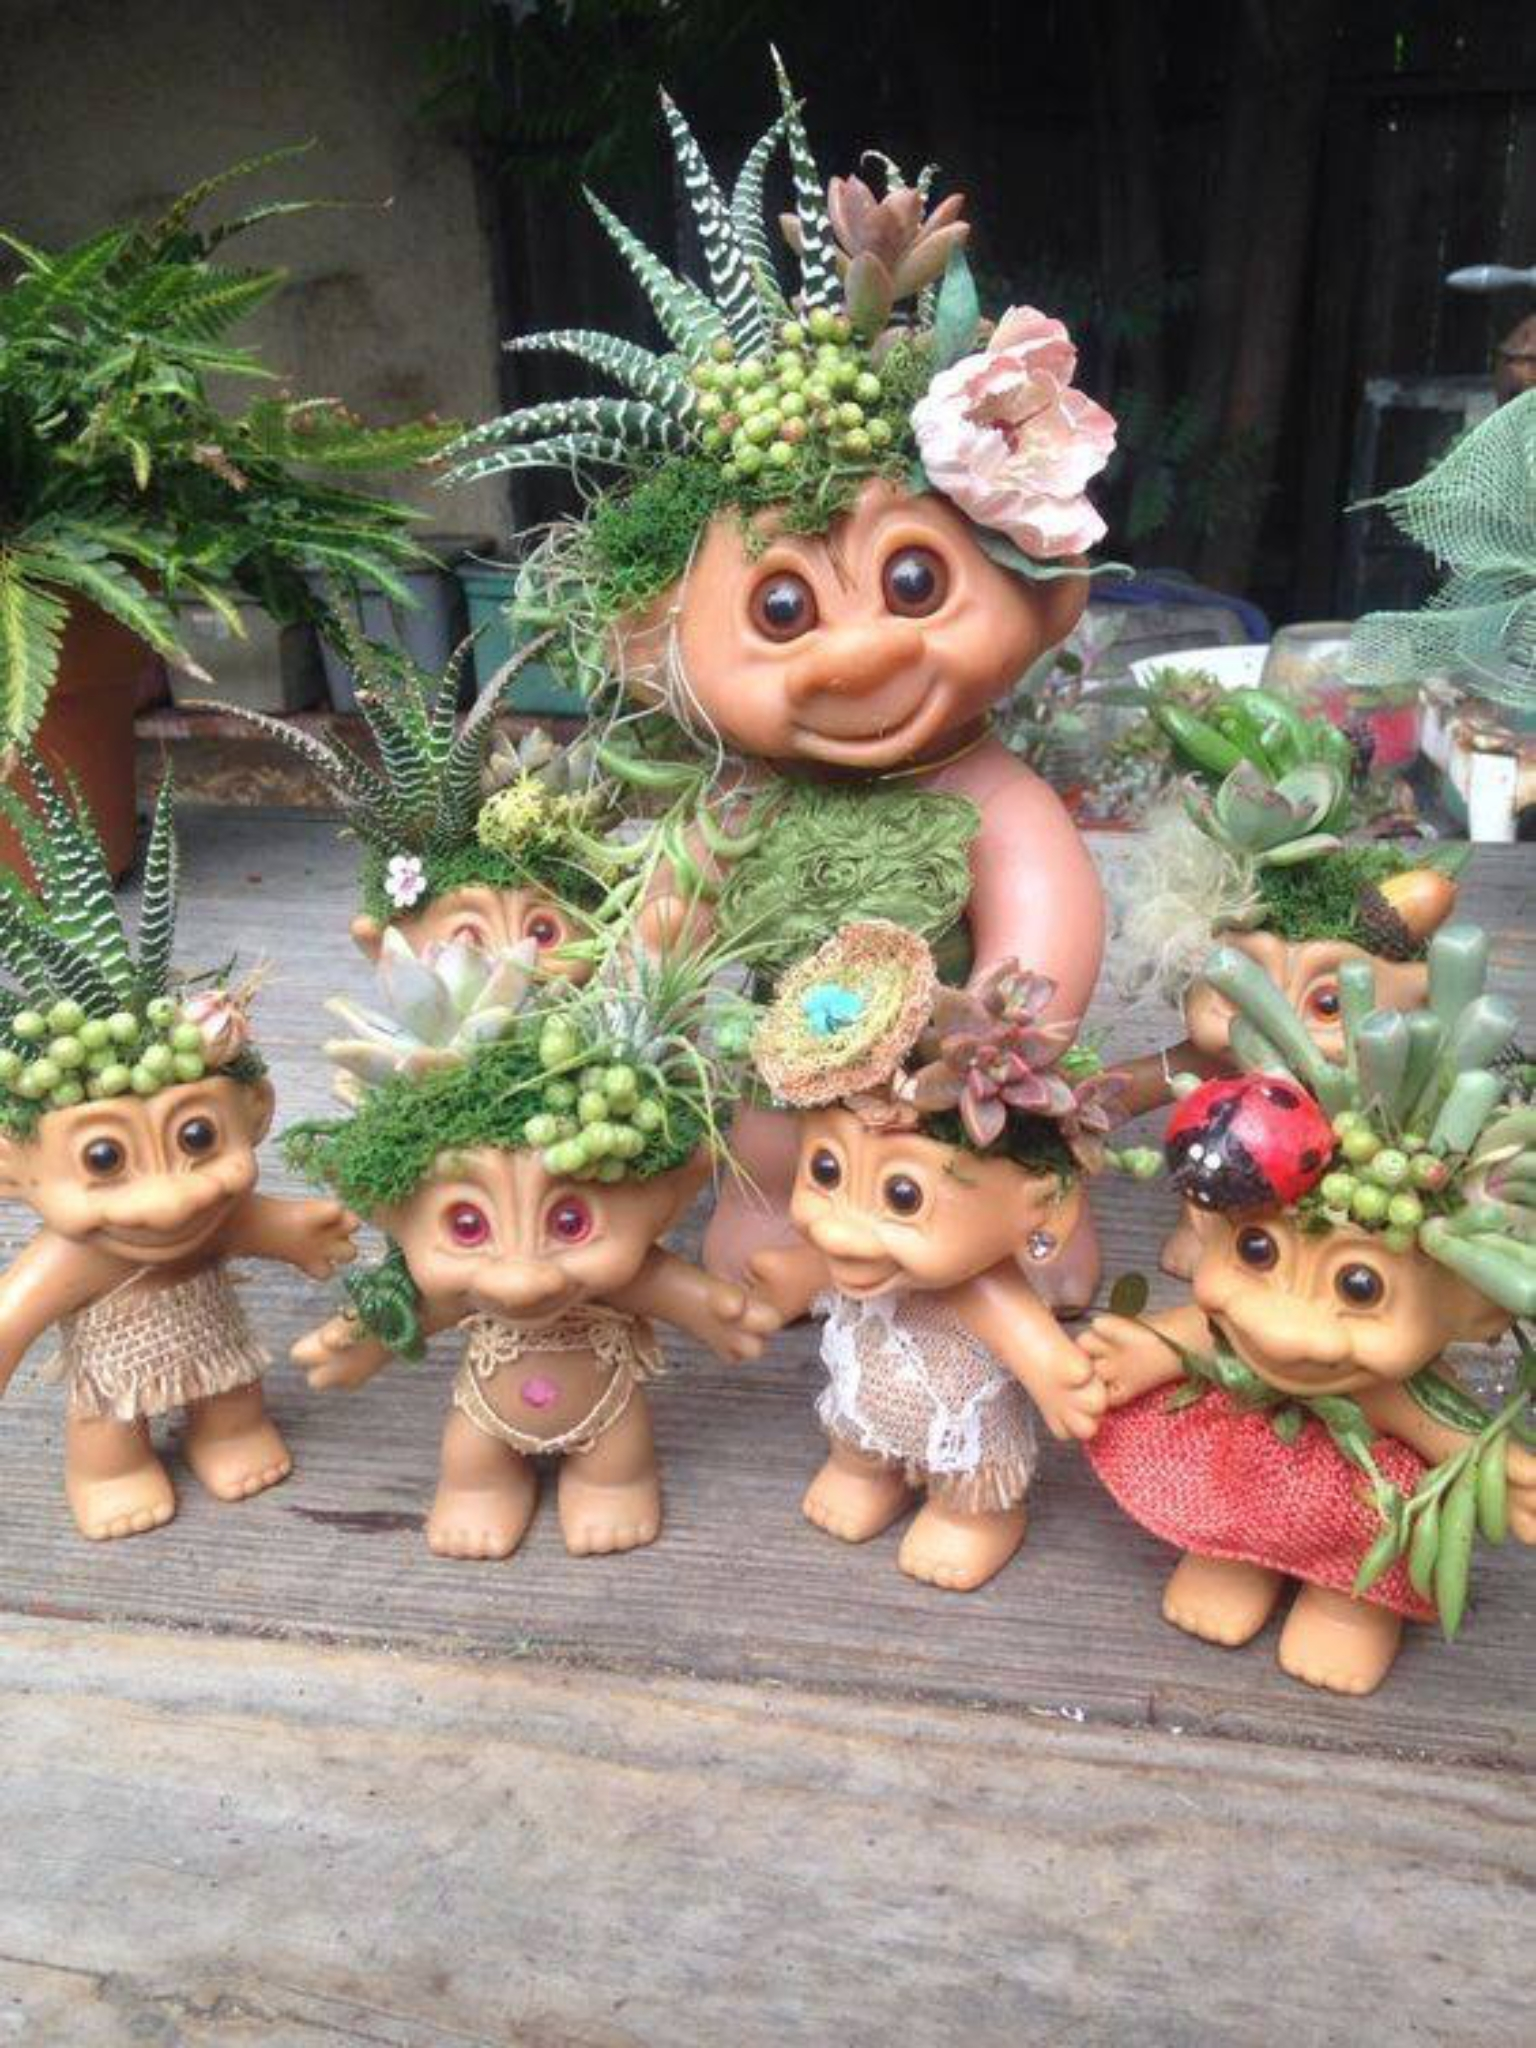 troll dolls upcycled succulent holder | cactus garden inspiration for Decorating The Garden